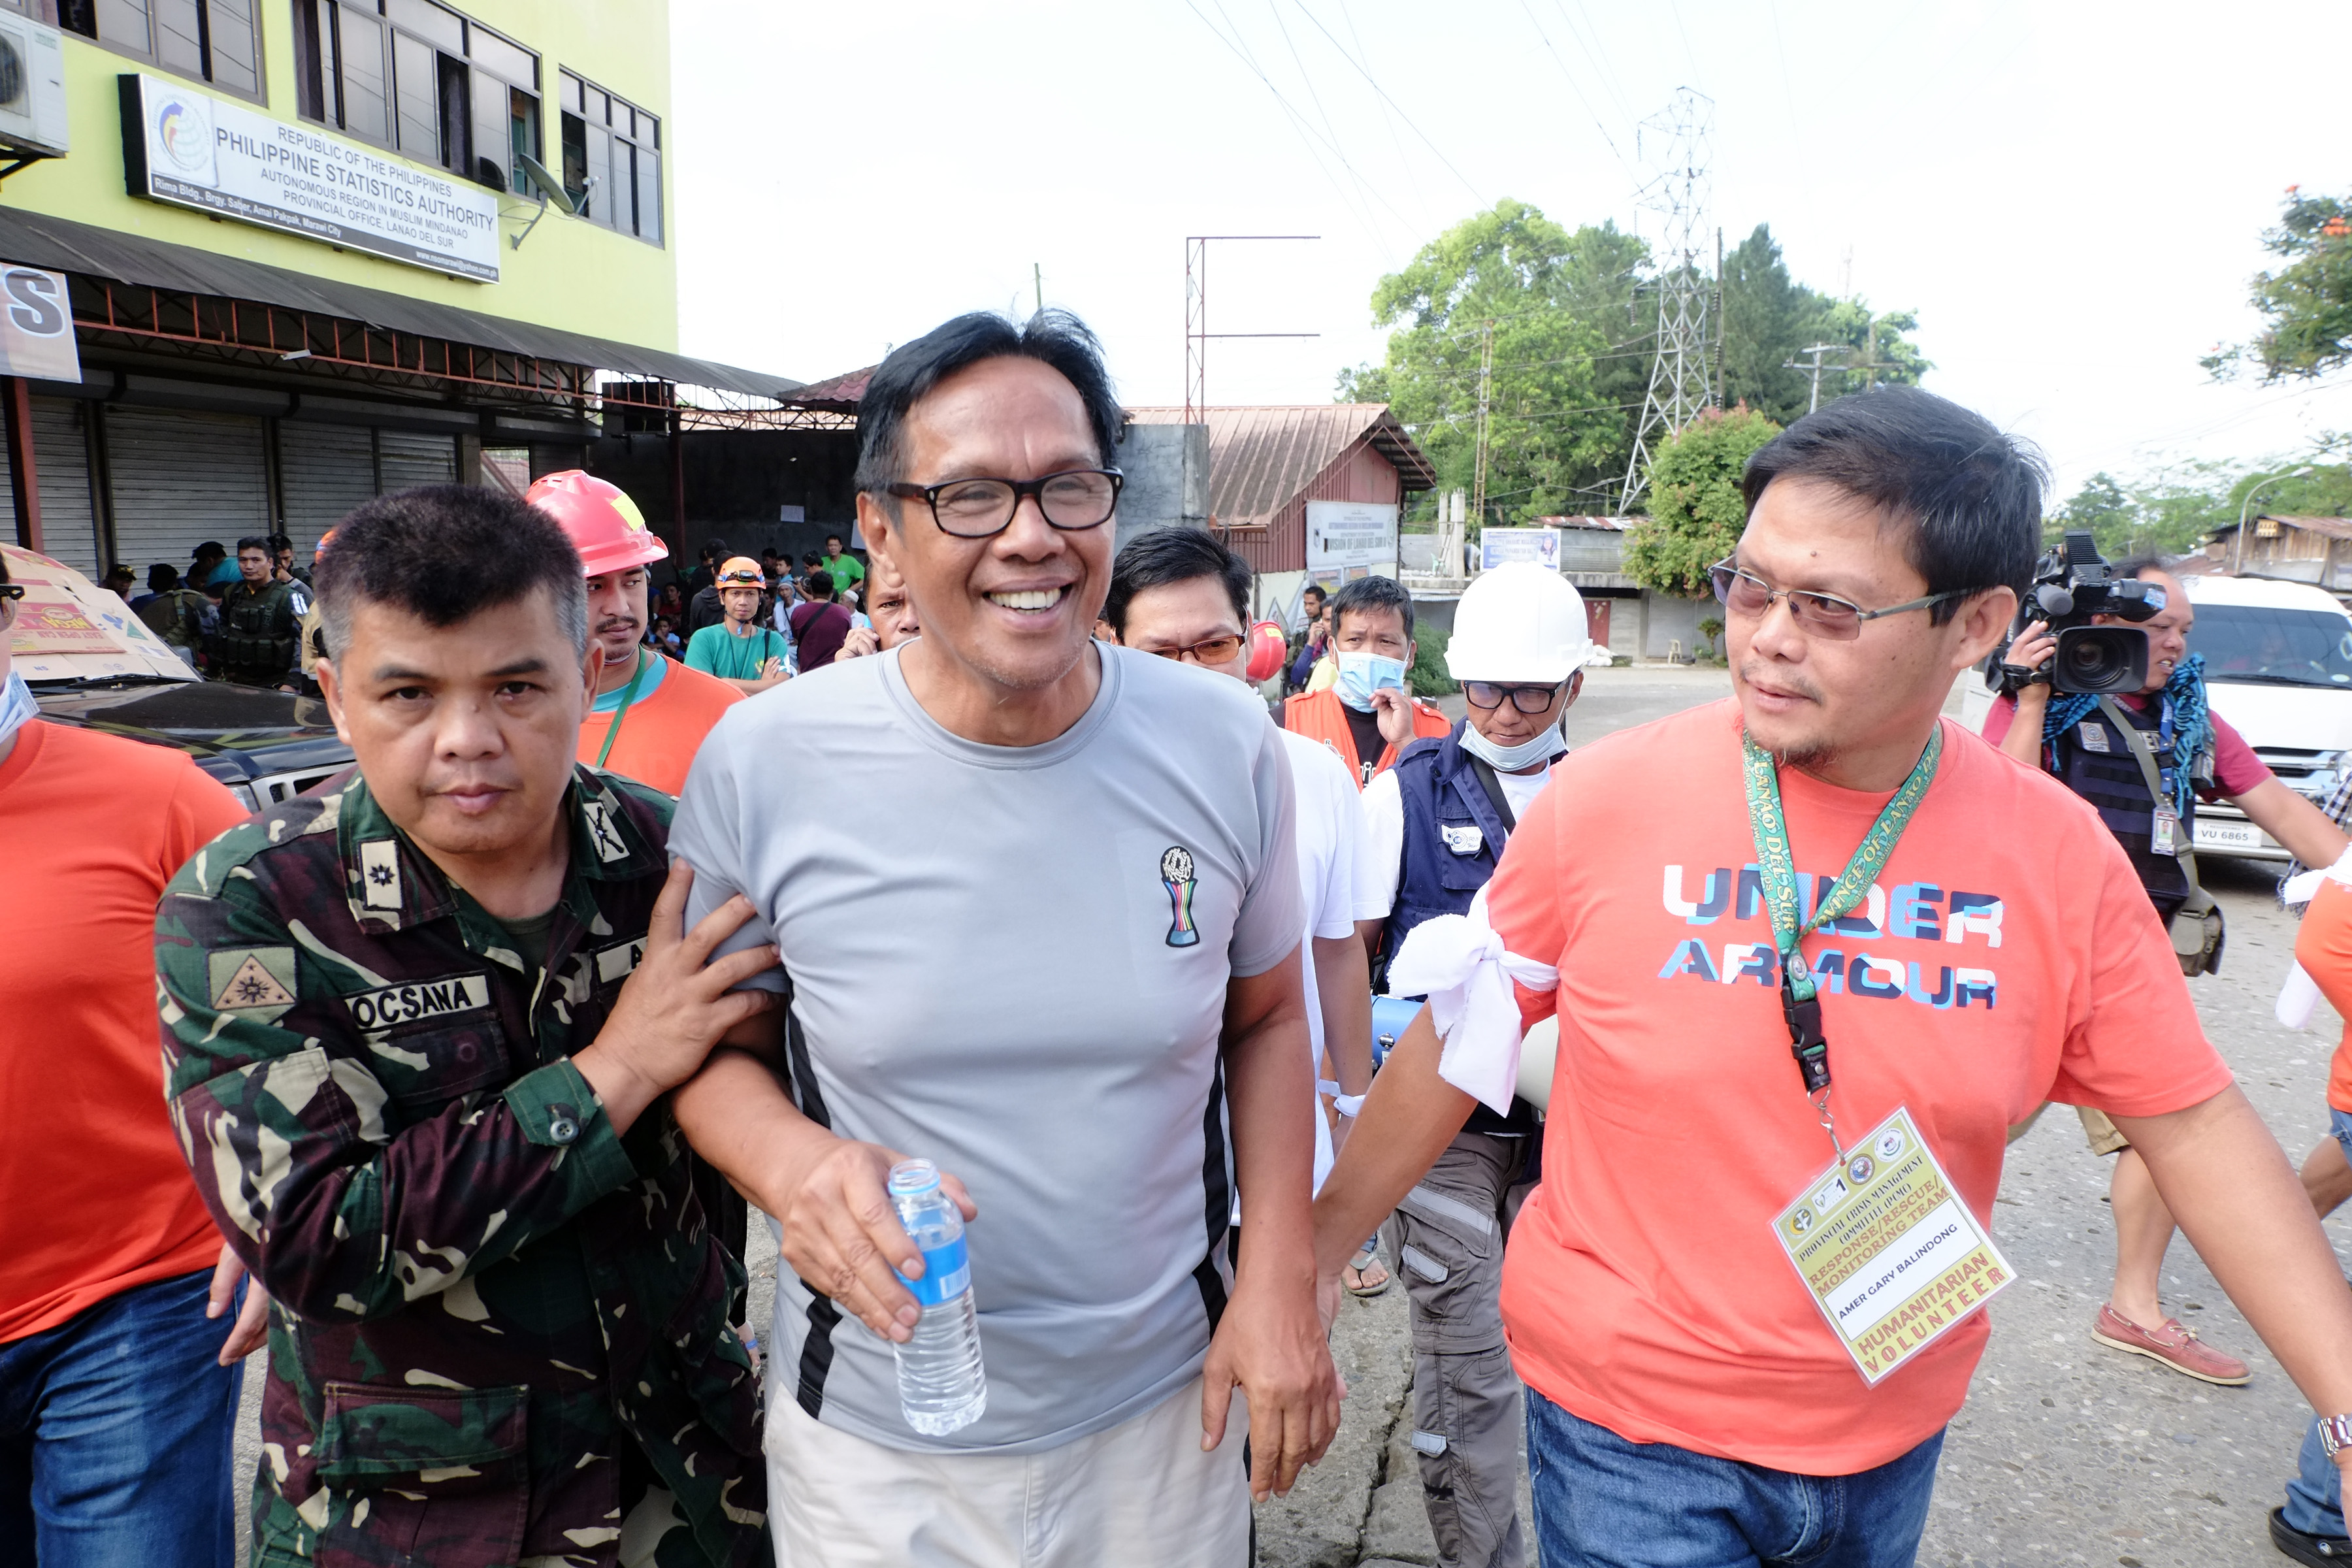 ESCAPE. The last big batch of trapped residents who escaped the combat zone was led by Norodin Alonto Lucman. Photo by Bobby Lagsa/Rappler